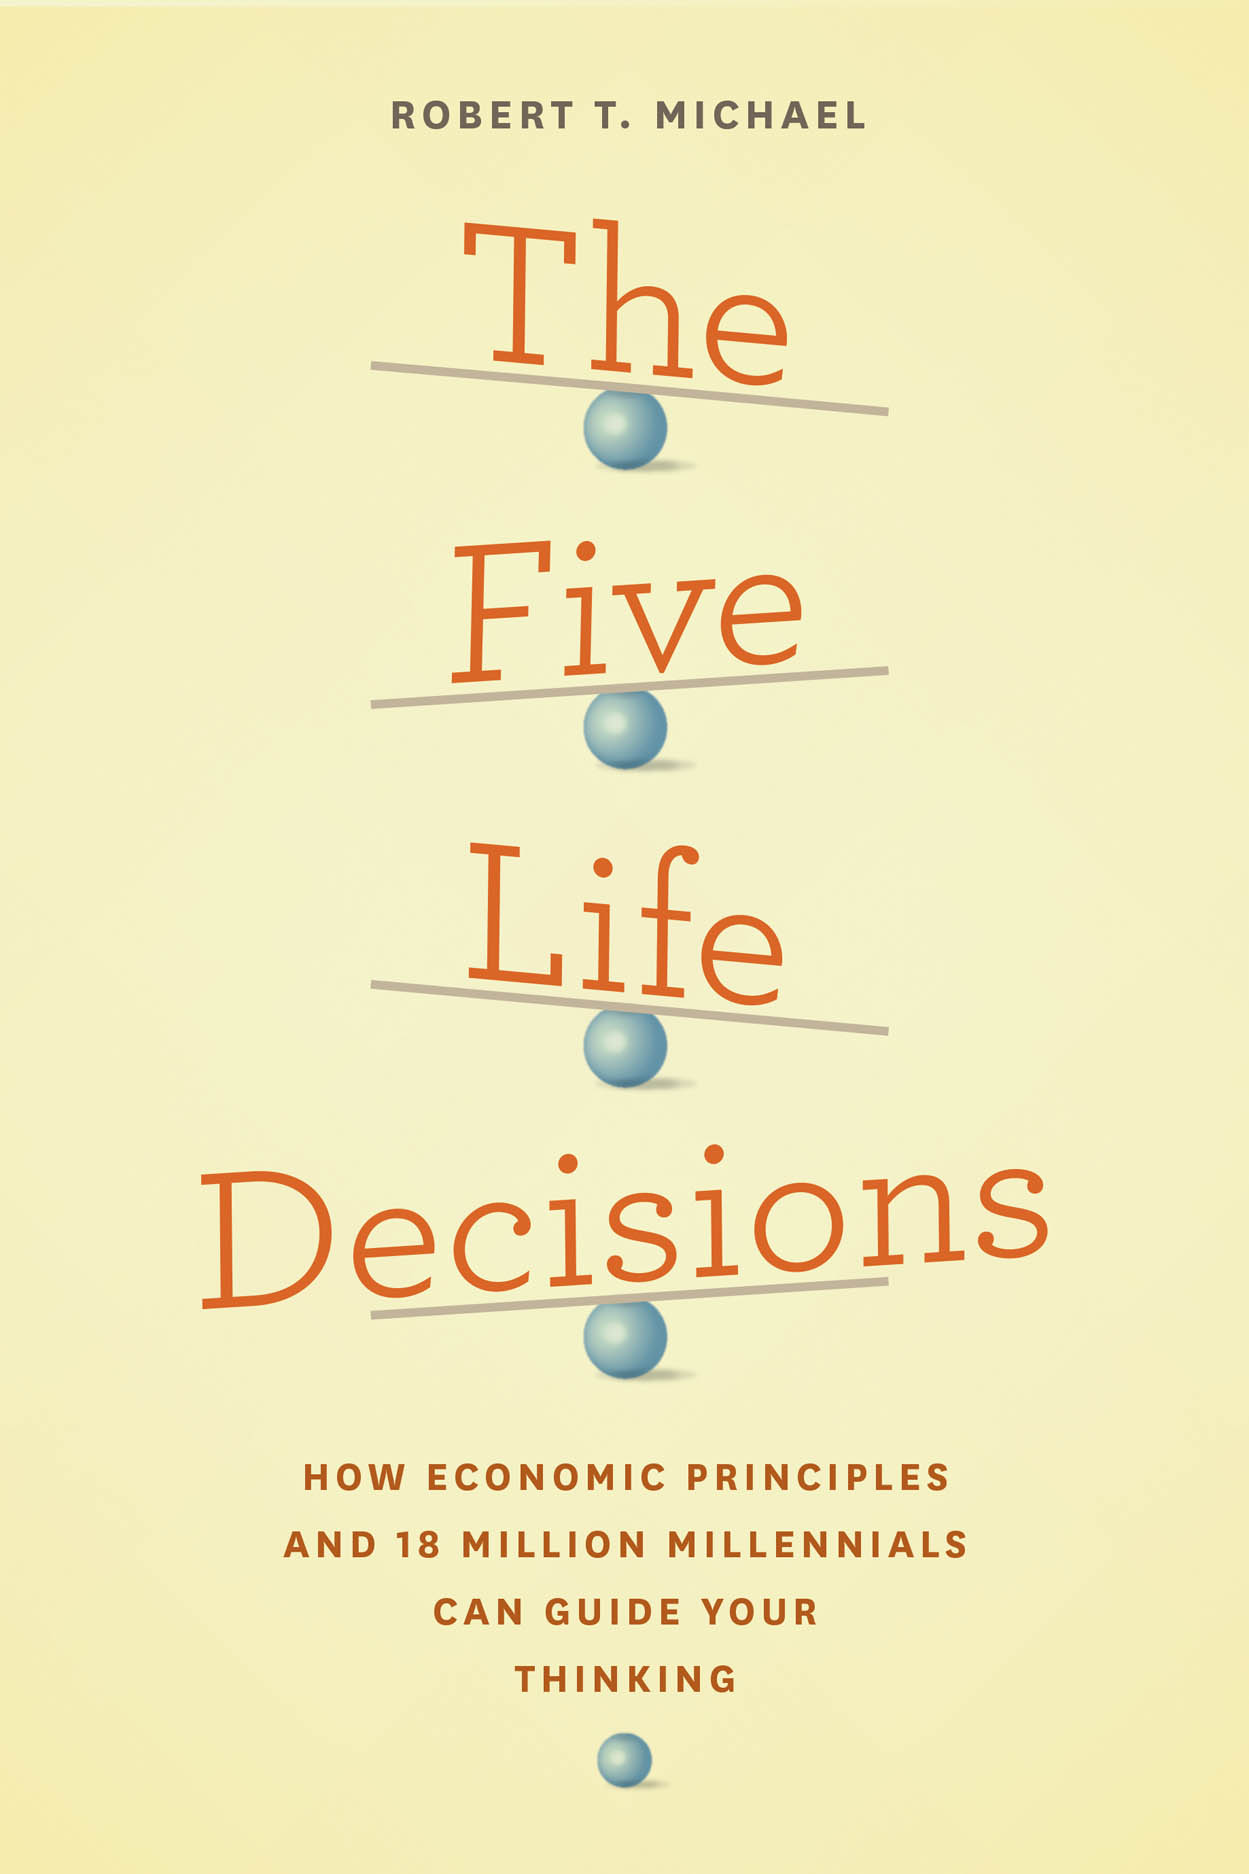 The Five Life Decisions: How Economic Principles and 18 Million Millennials Can Guide Your Thinking